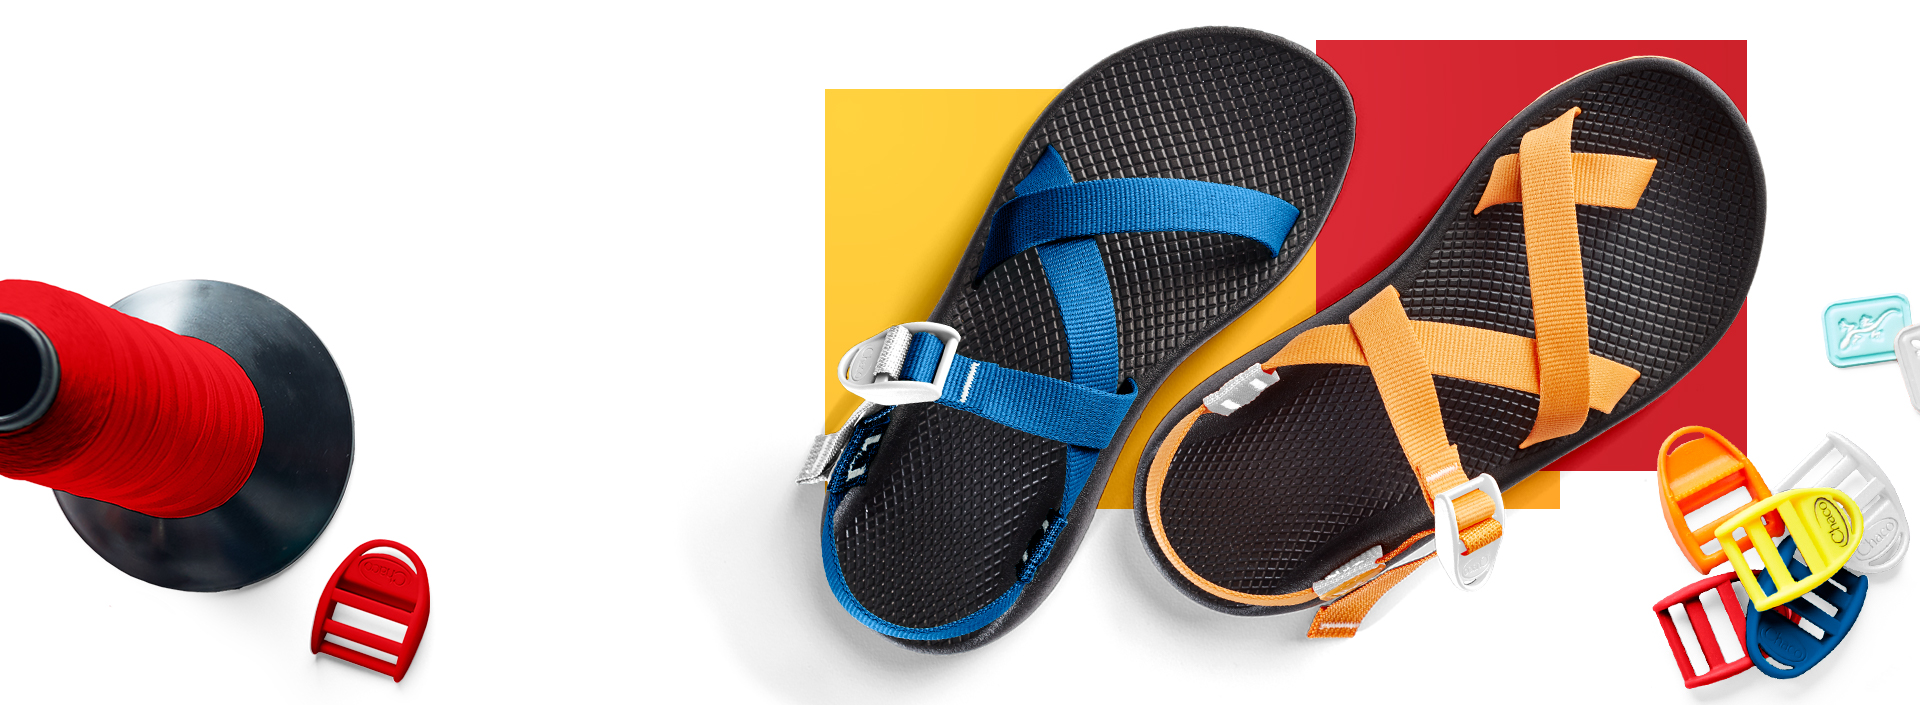 Chaco sandals with a spool and colored tiles